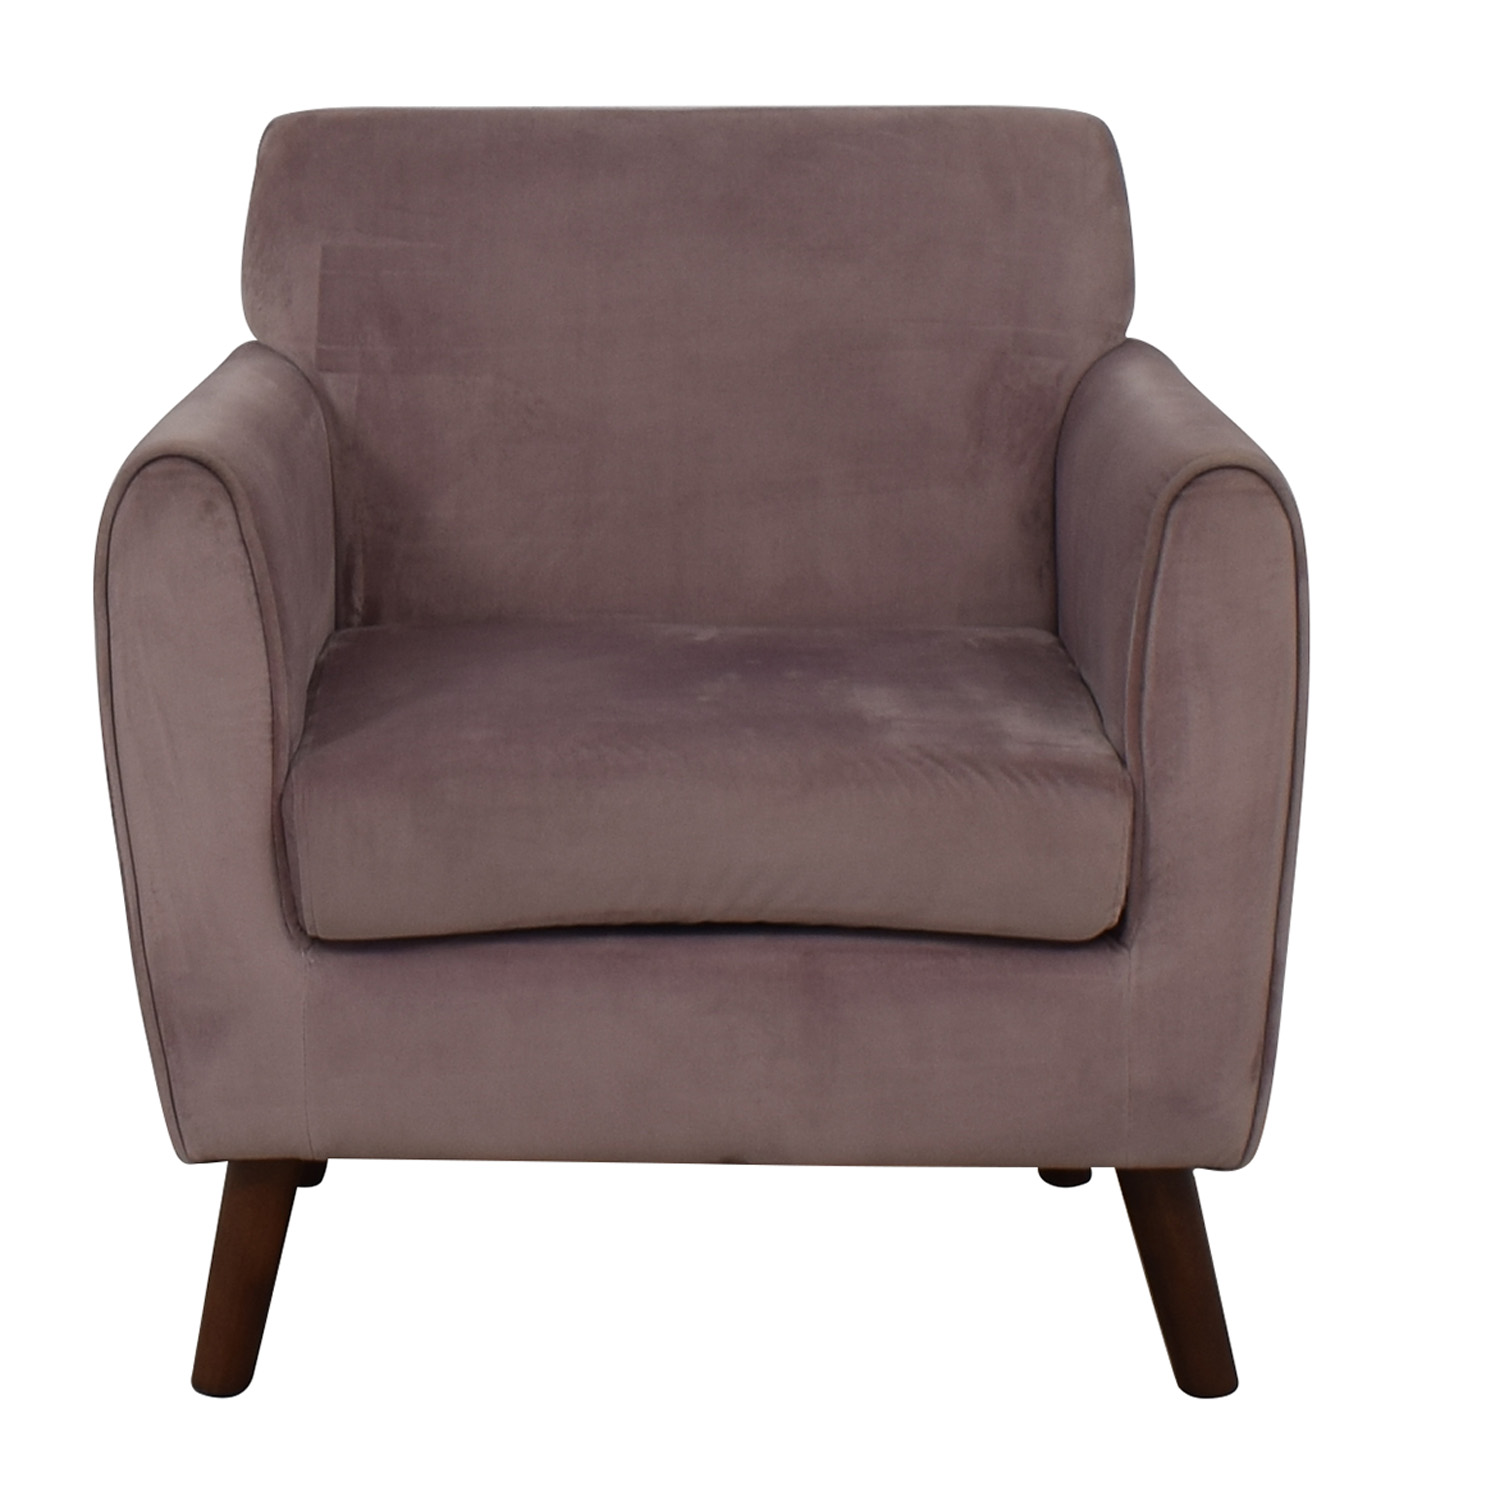 71 Off Brylane Home Brylane Home Purple Accent Chair Chairs